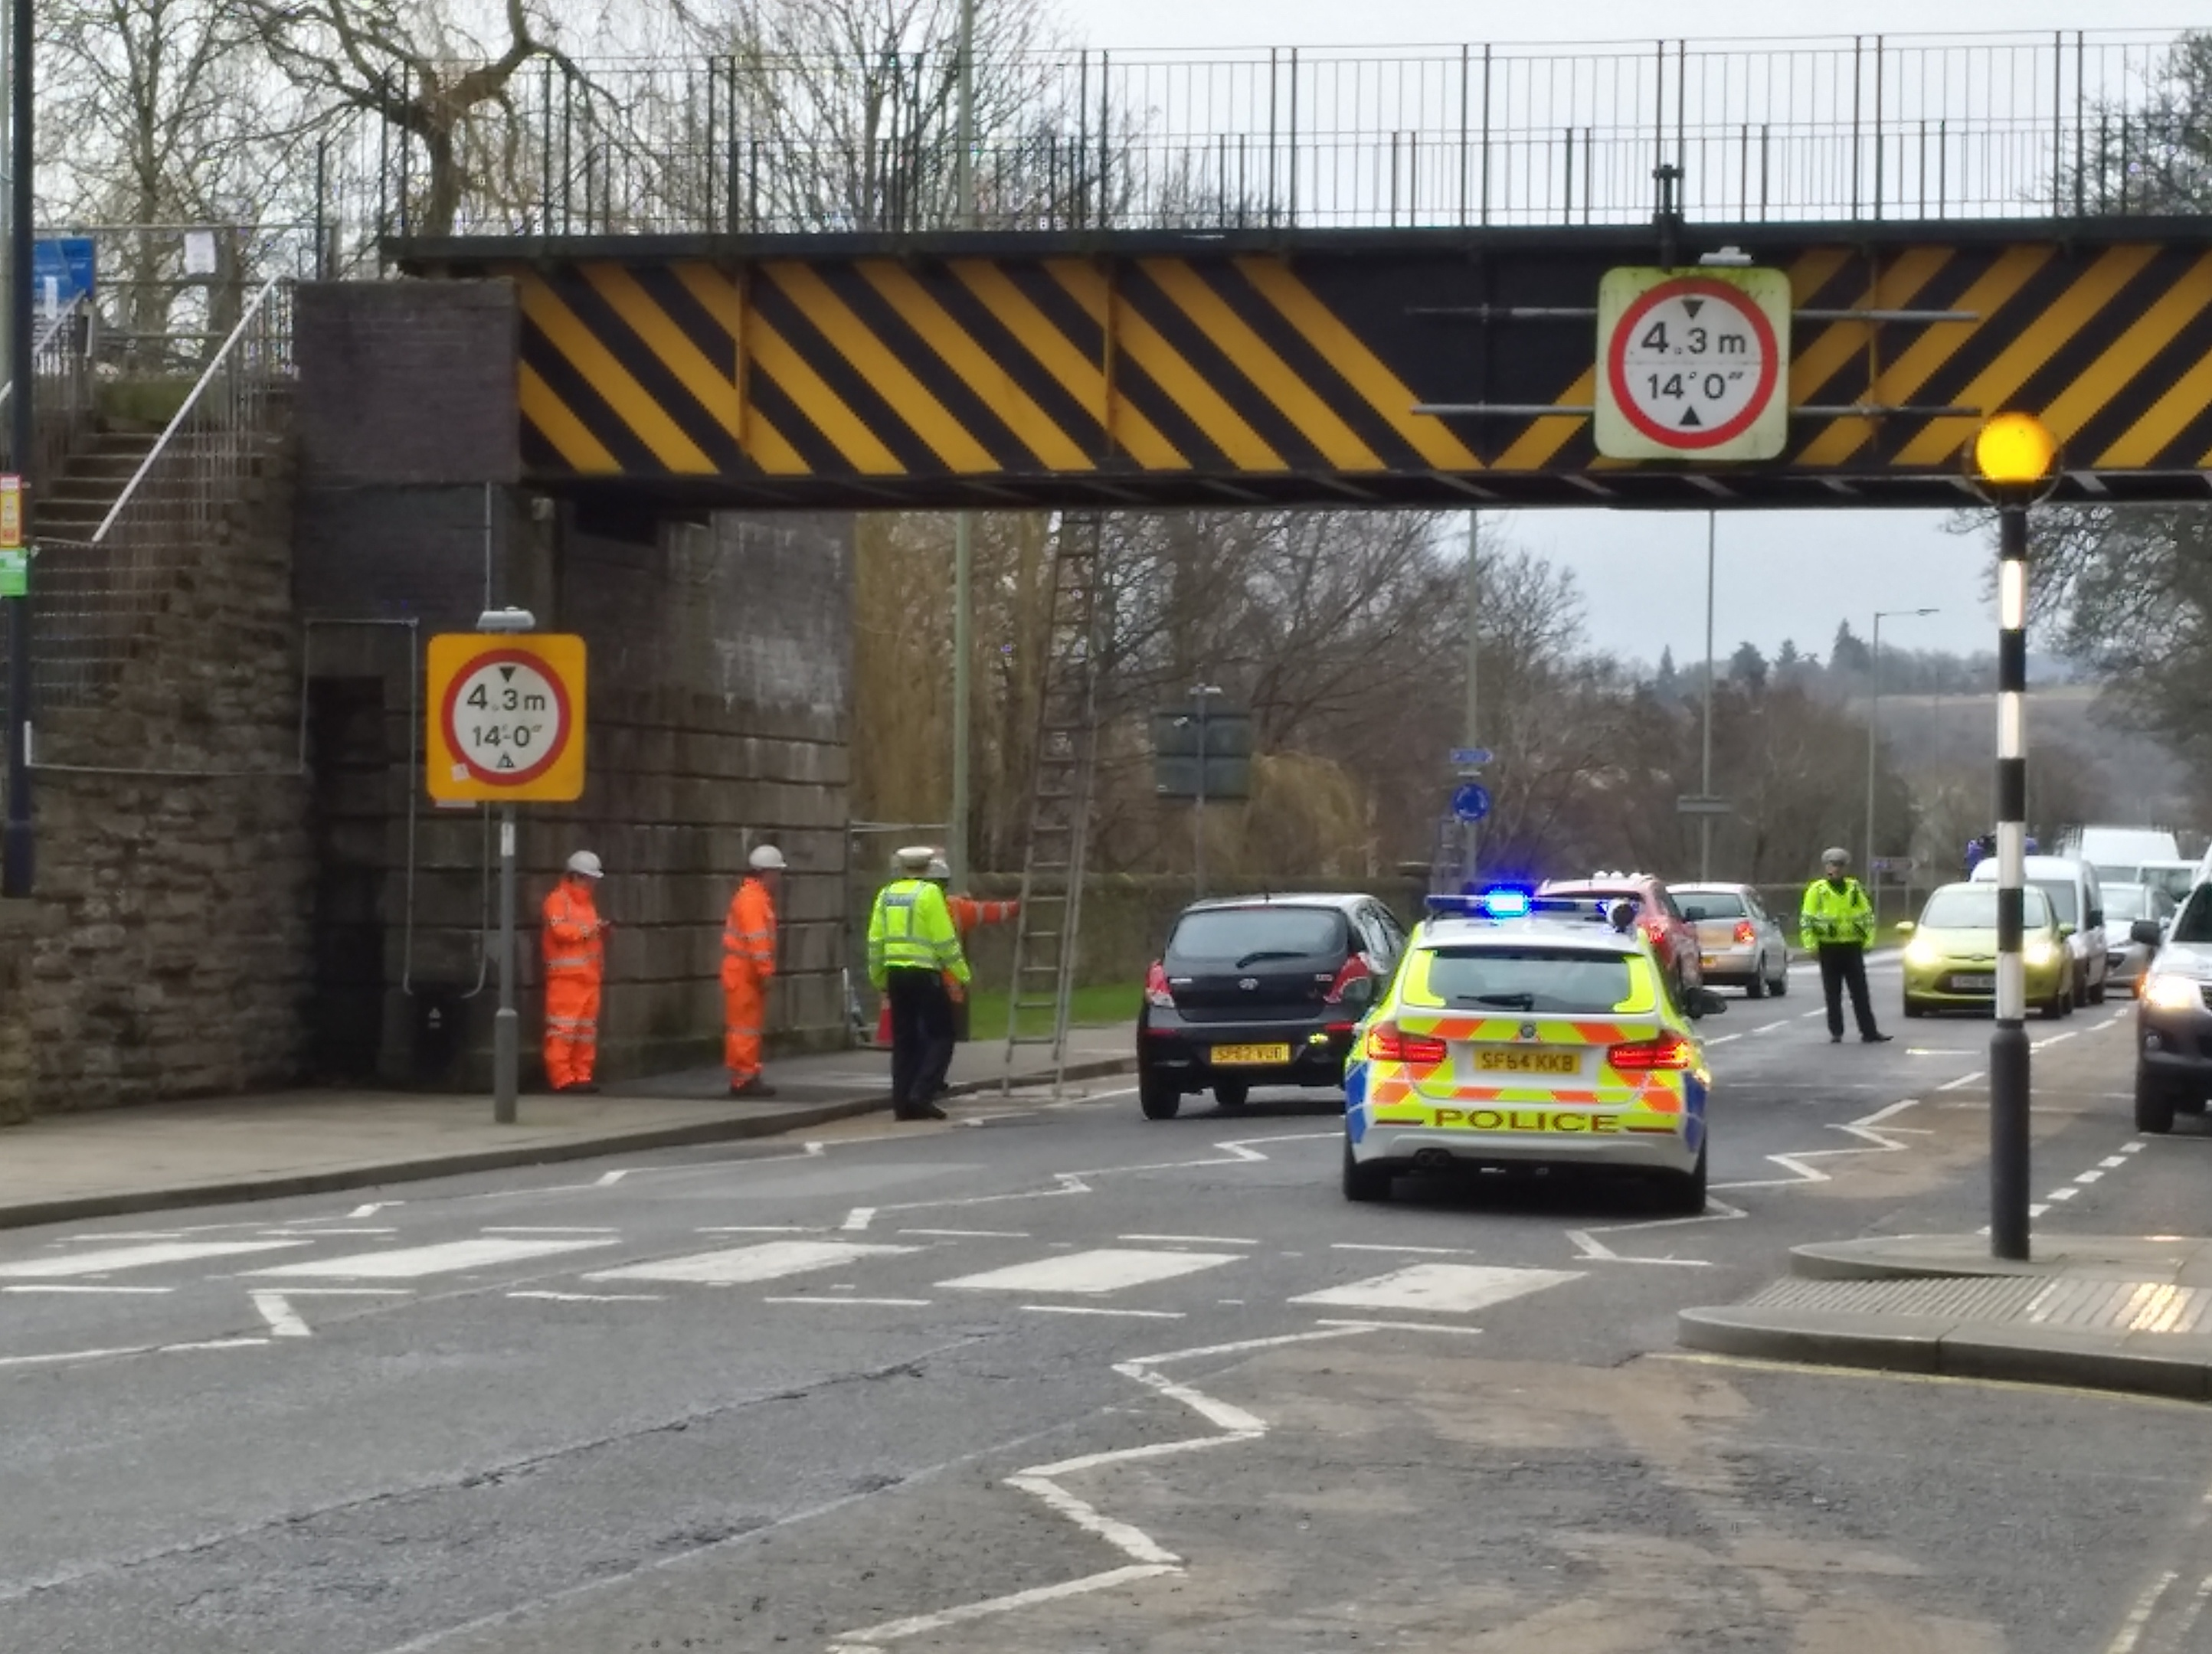 Police officers direct traffic as engineers assess damage to the bridge.